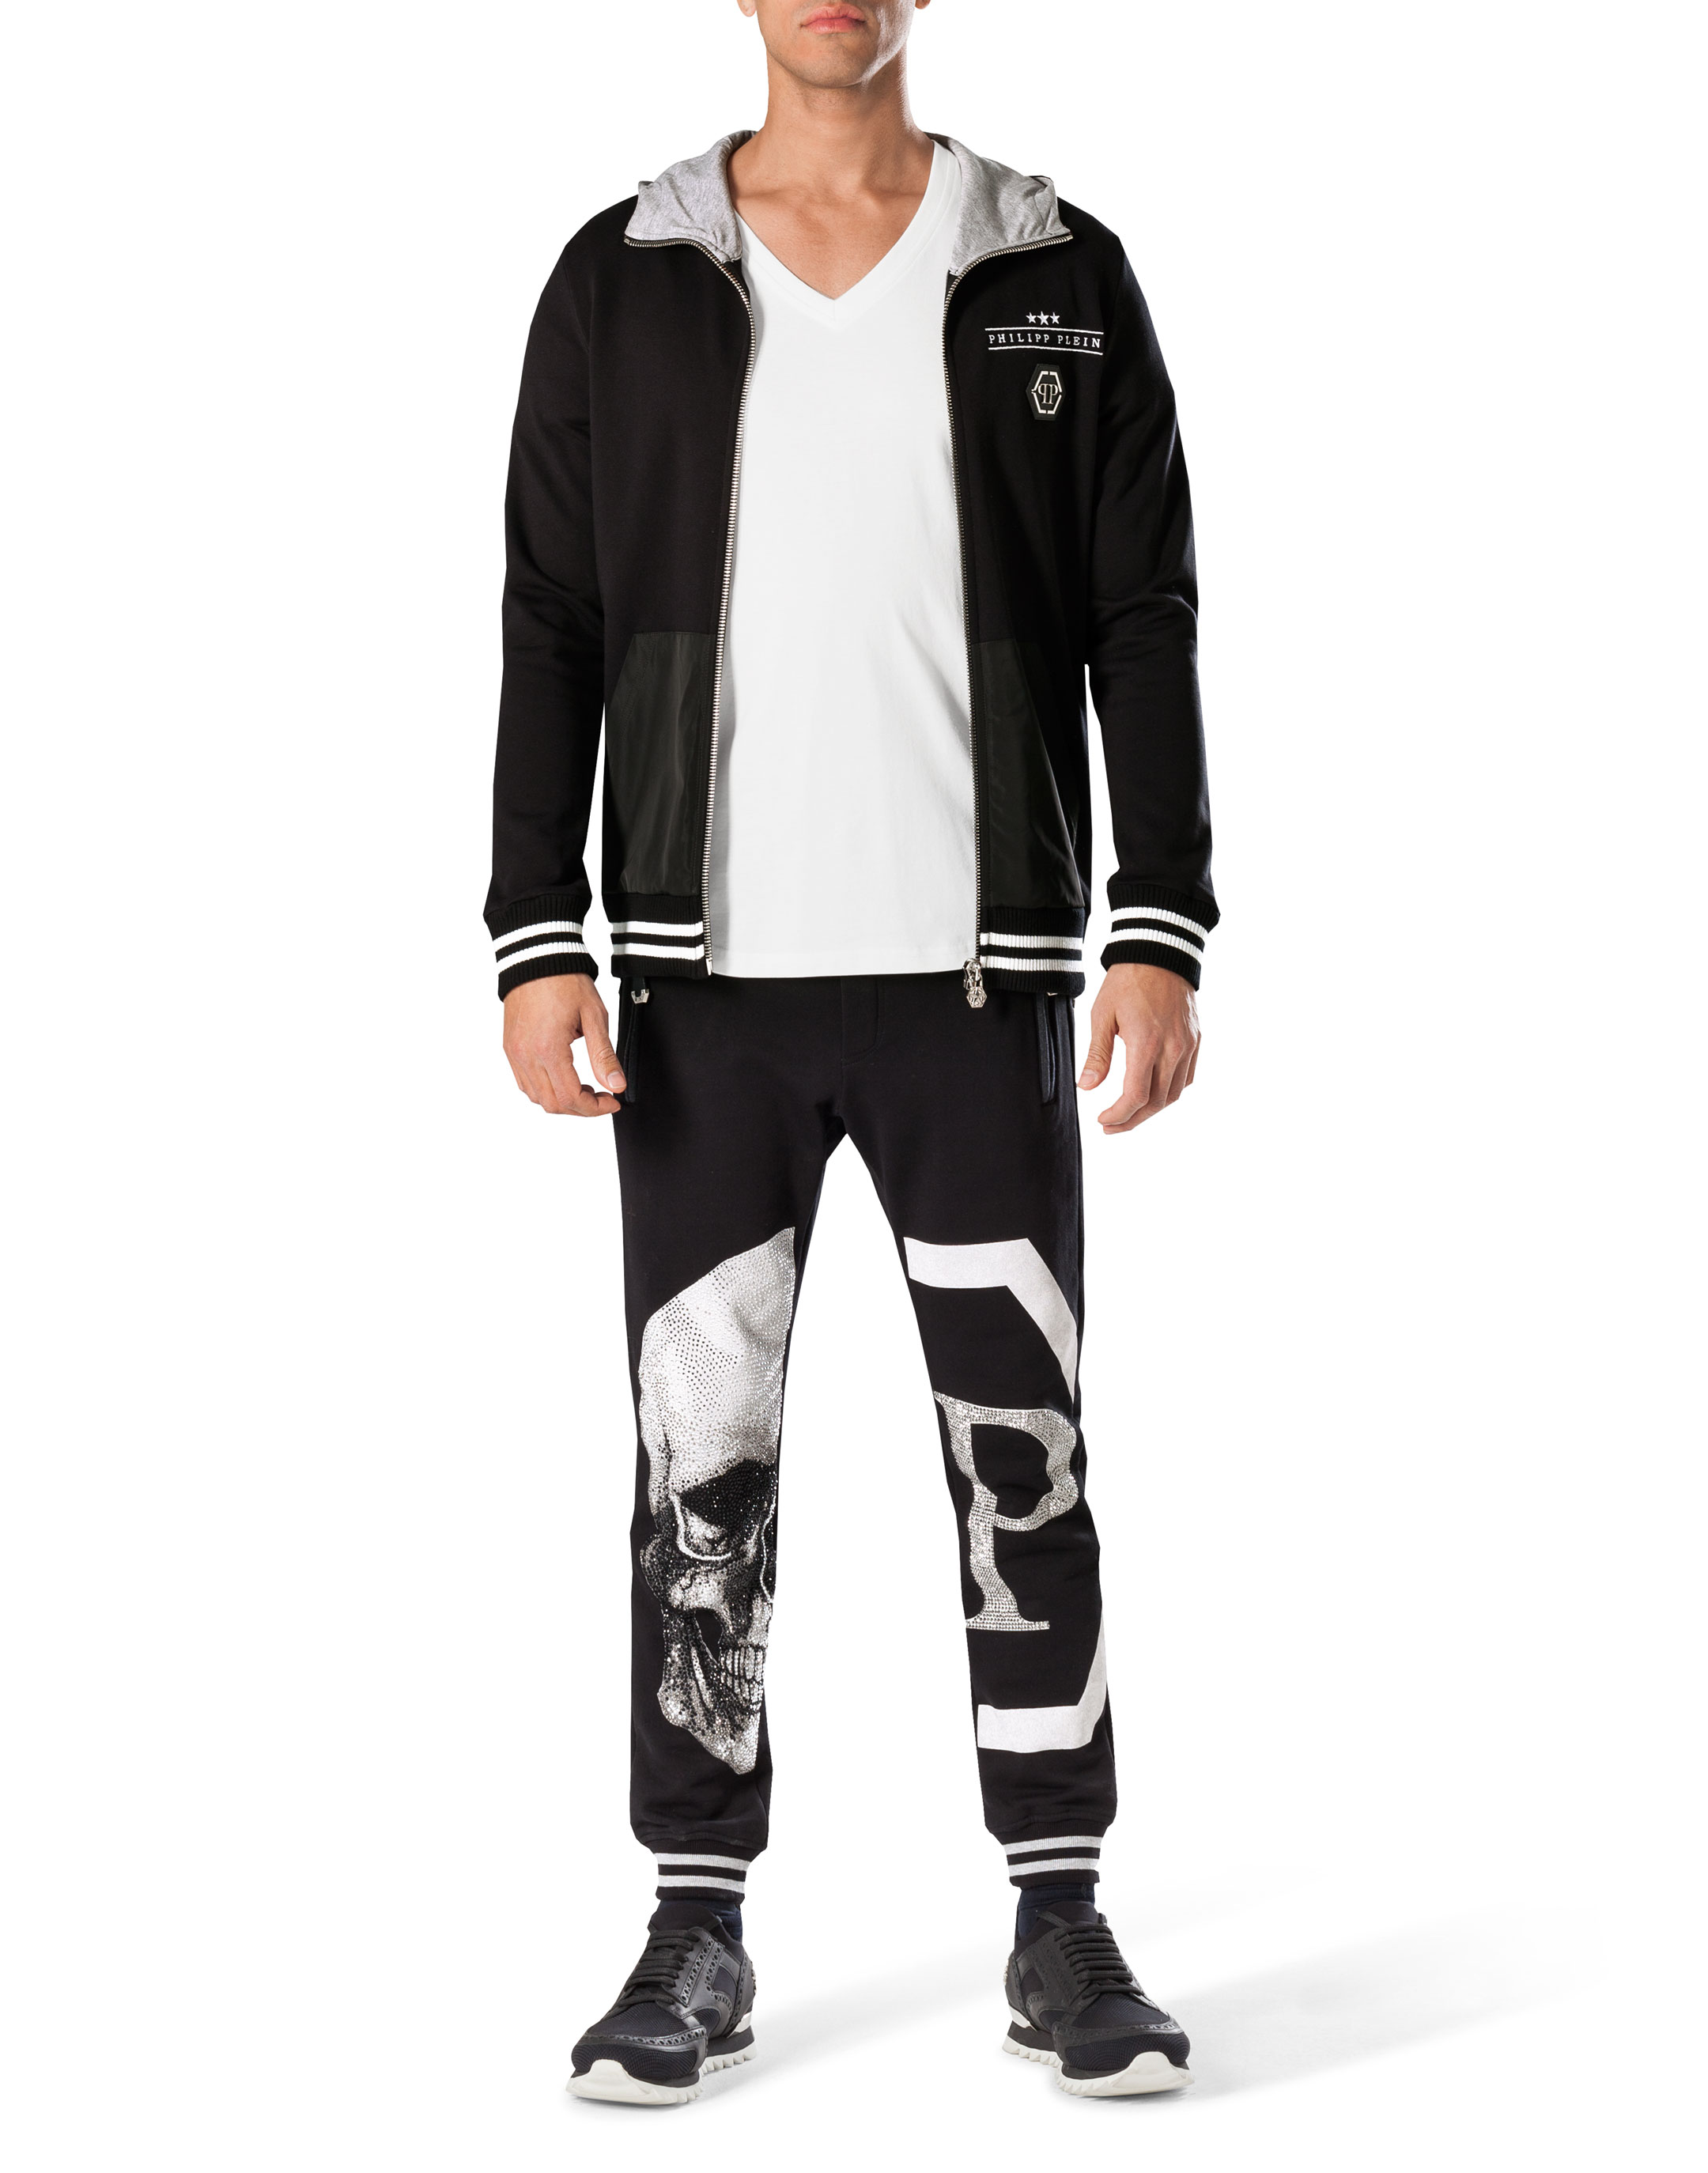 Outlet WorkPhilipp Outlet Plein Hoodie WorkPhilipp Hoodie Plein Sweatjacket WorkPhilipp Sweatjacket Hoodie Plein Sweatjacket J3uFTlc5K1